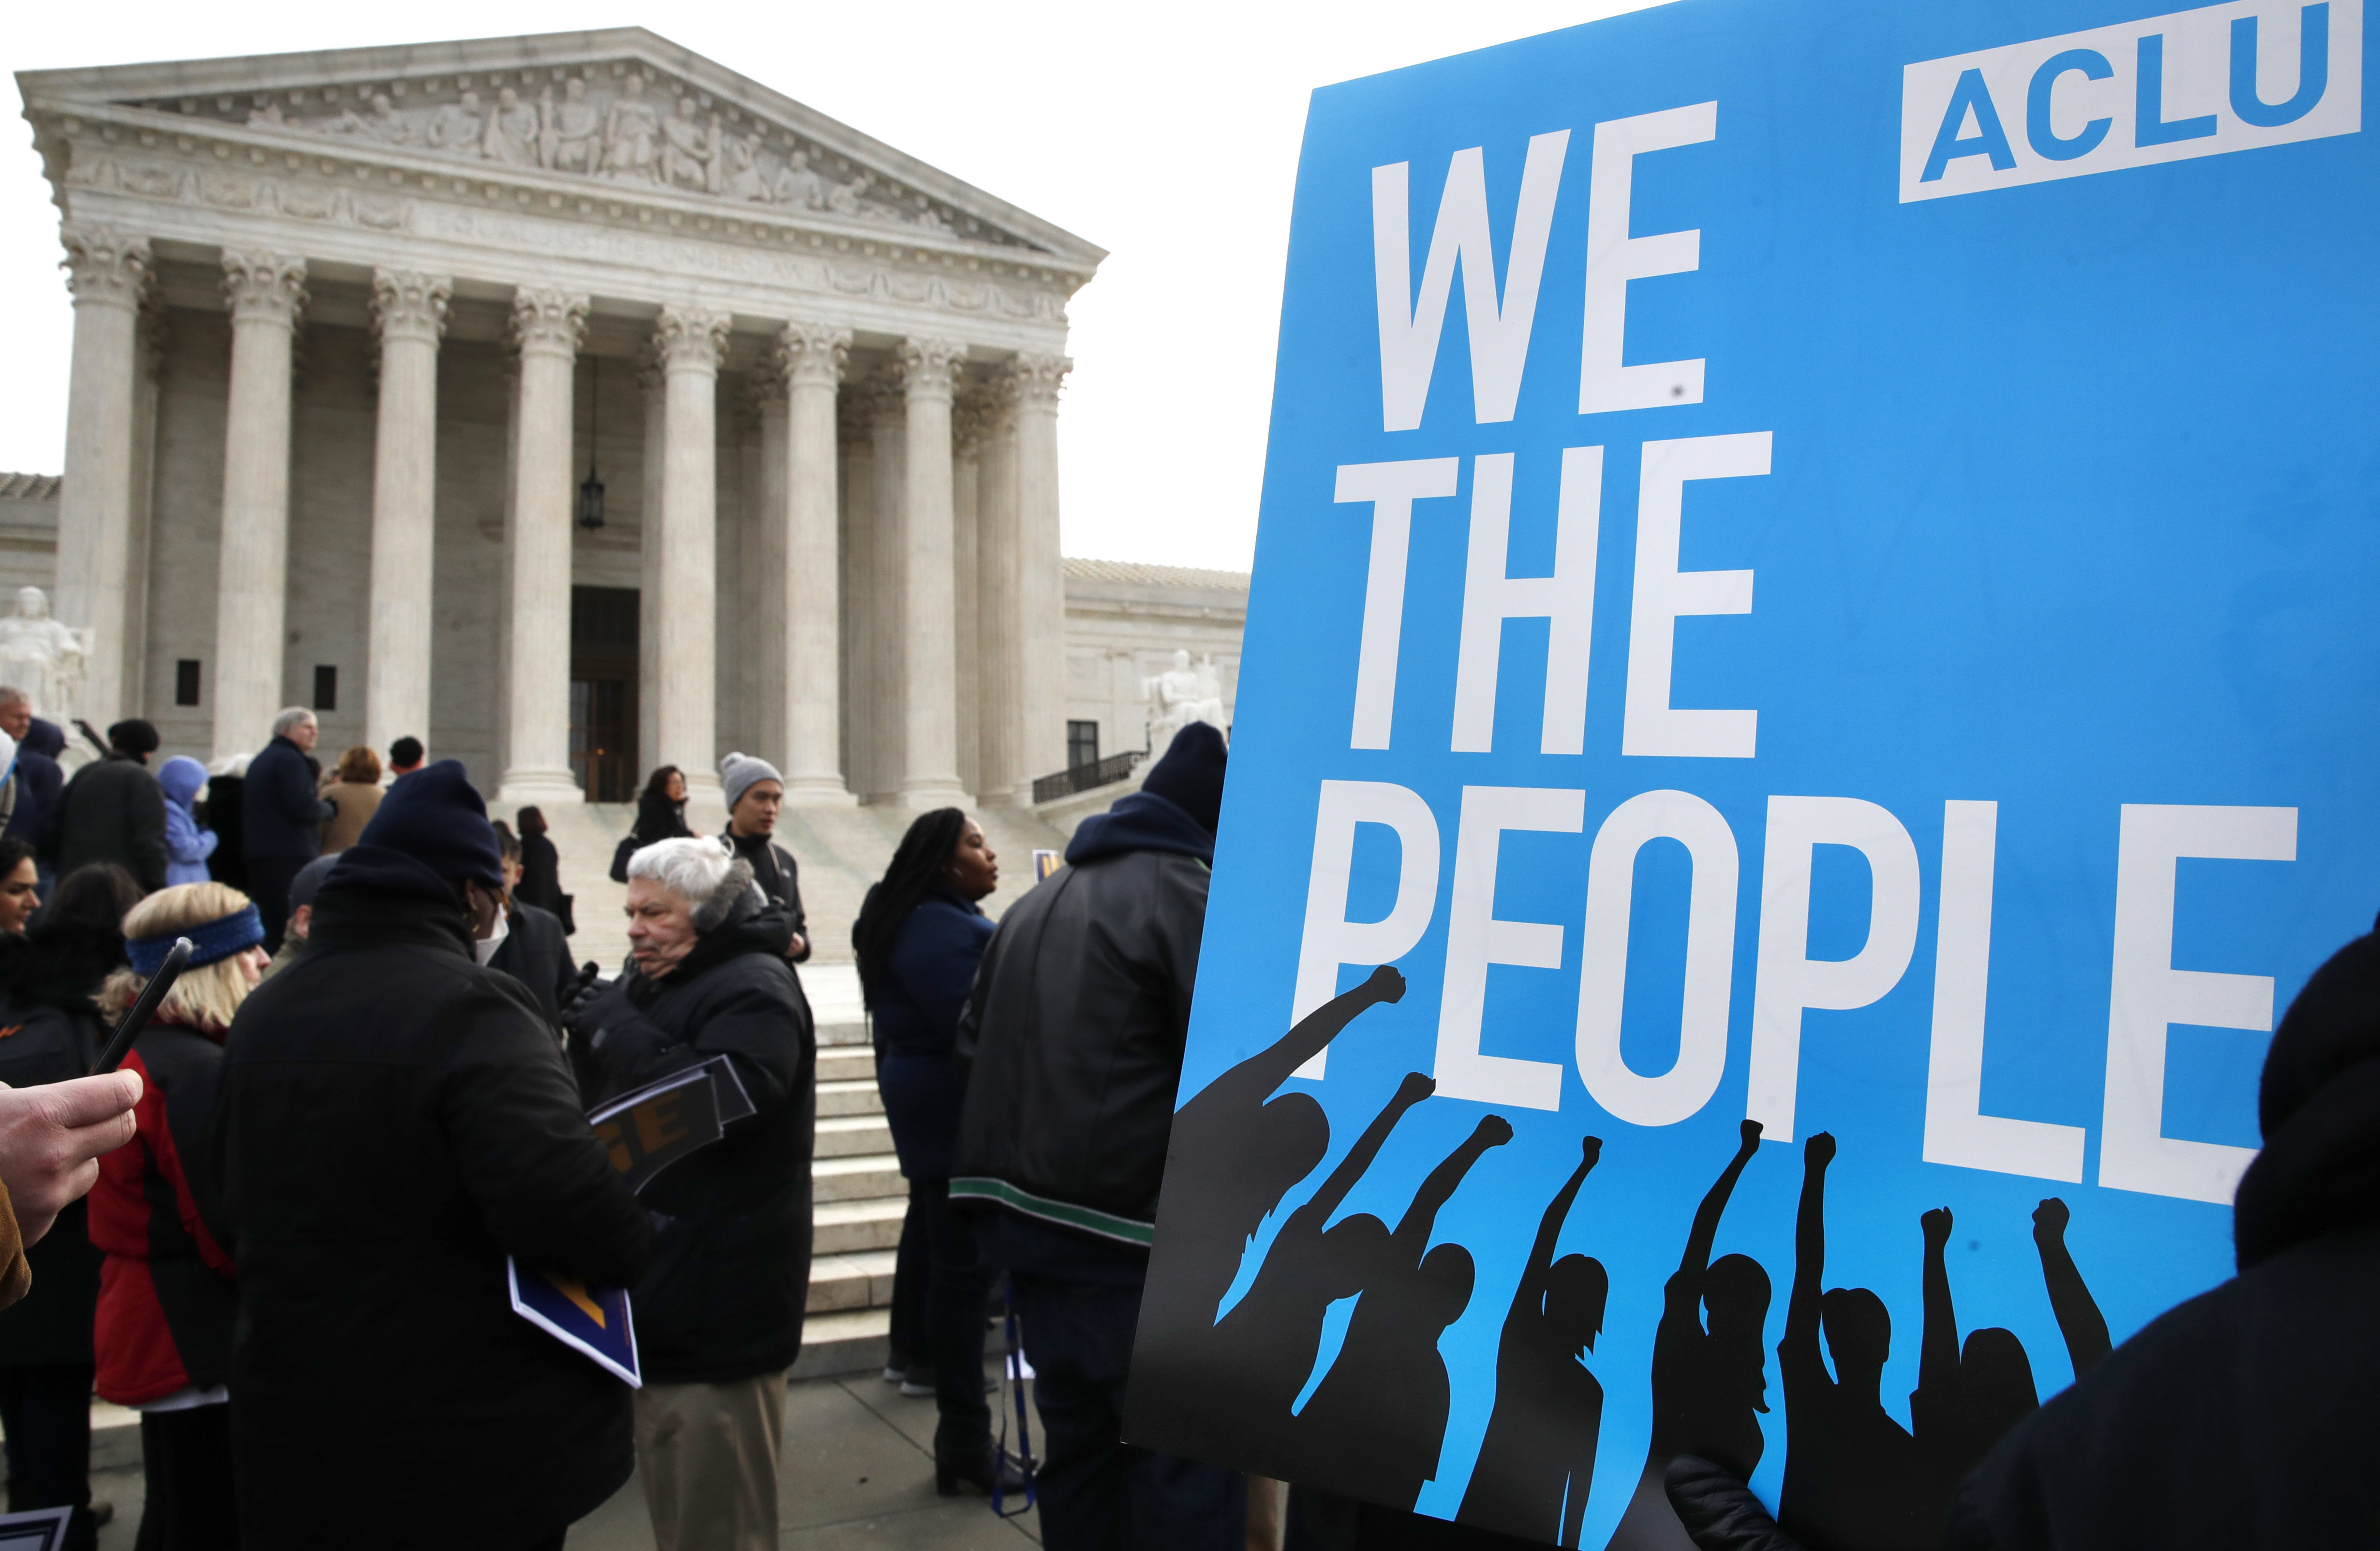 FILE - People rally outside of the Supreme Court in opposition to Ohio's voter roll purges in Washington, Jan. 10, 2018.